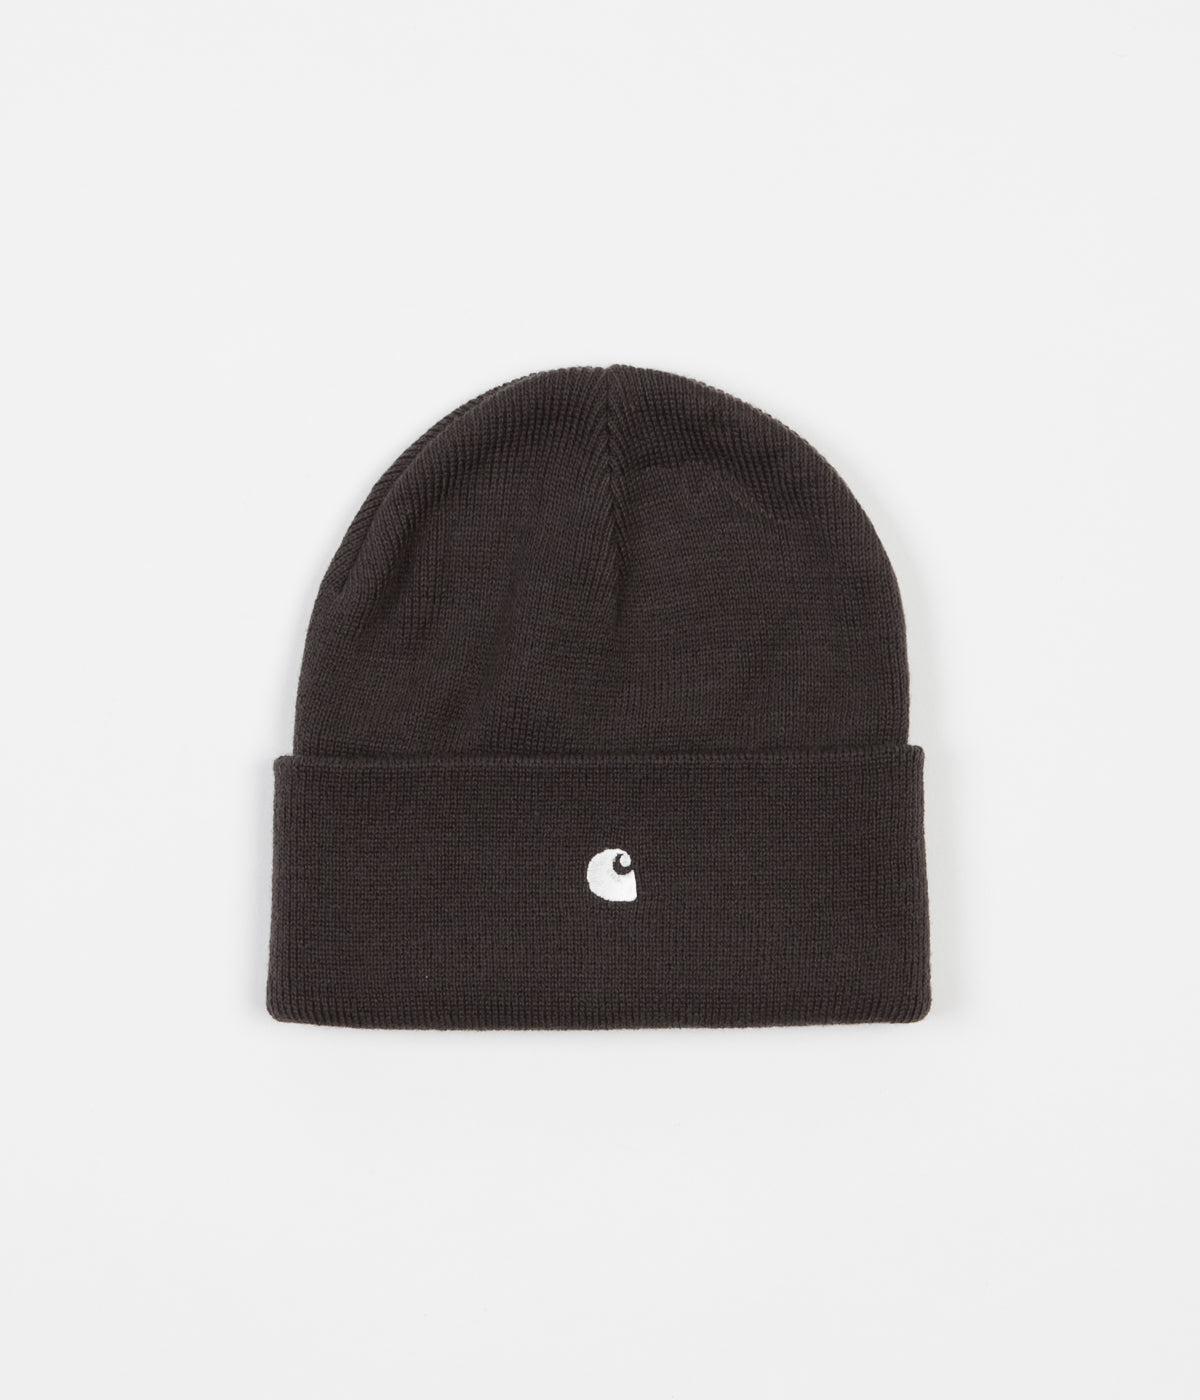 Carhartt Madison Beanie - Asphalt / Wax